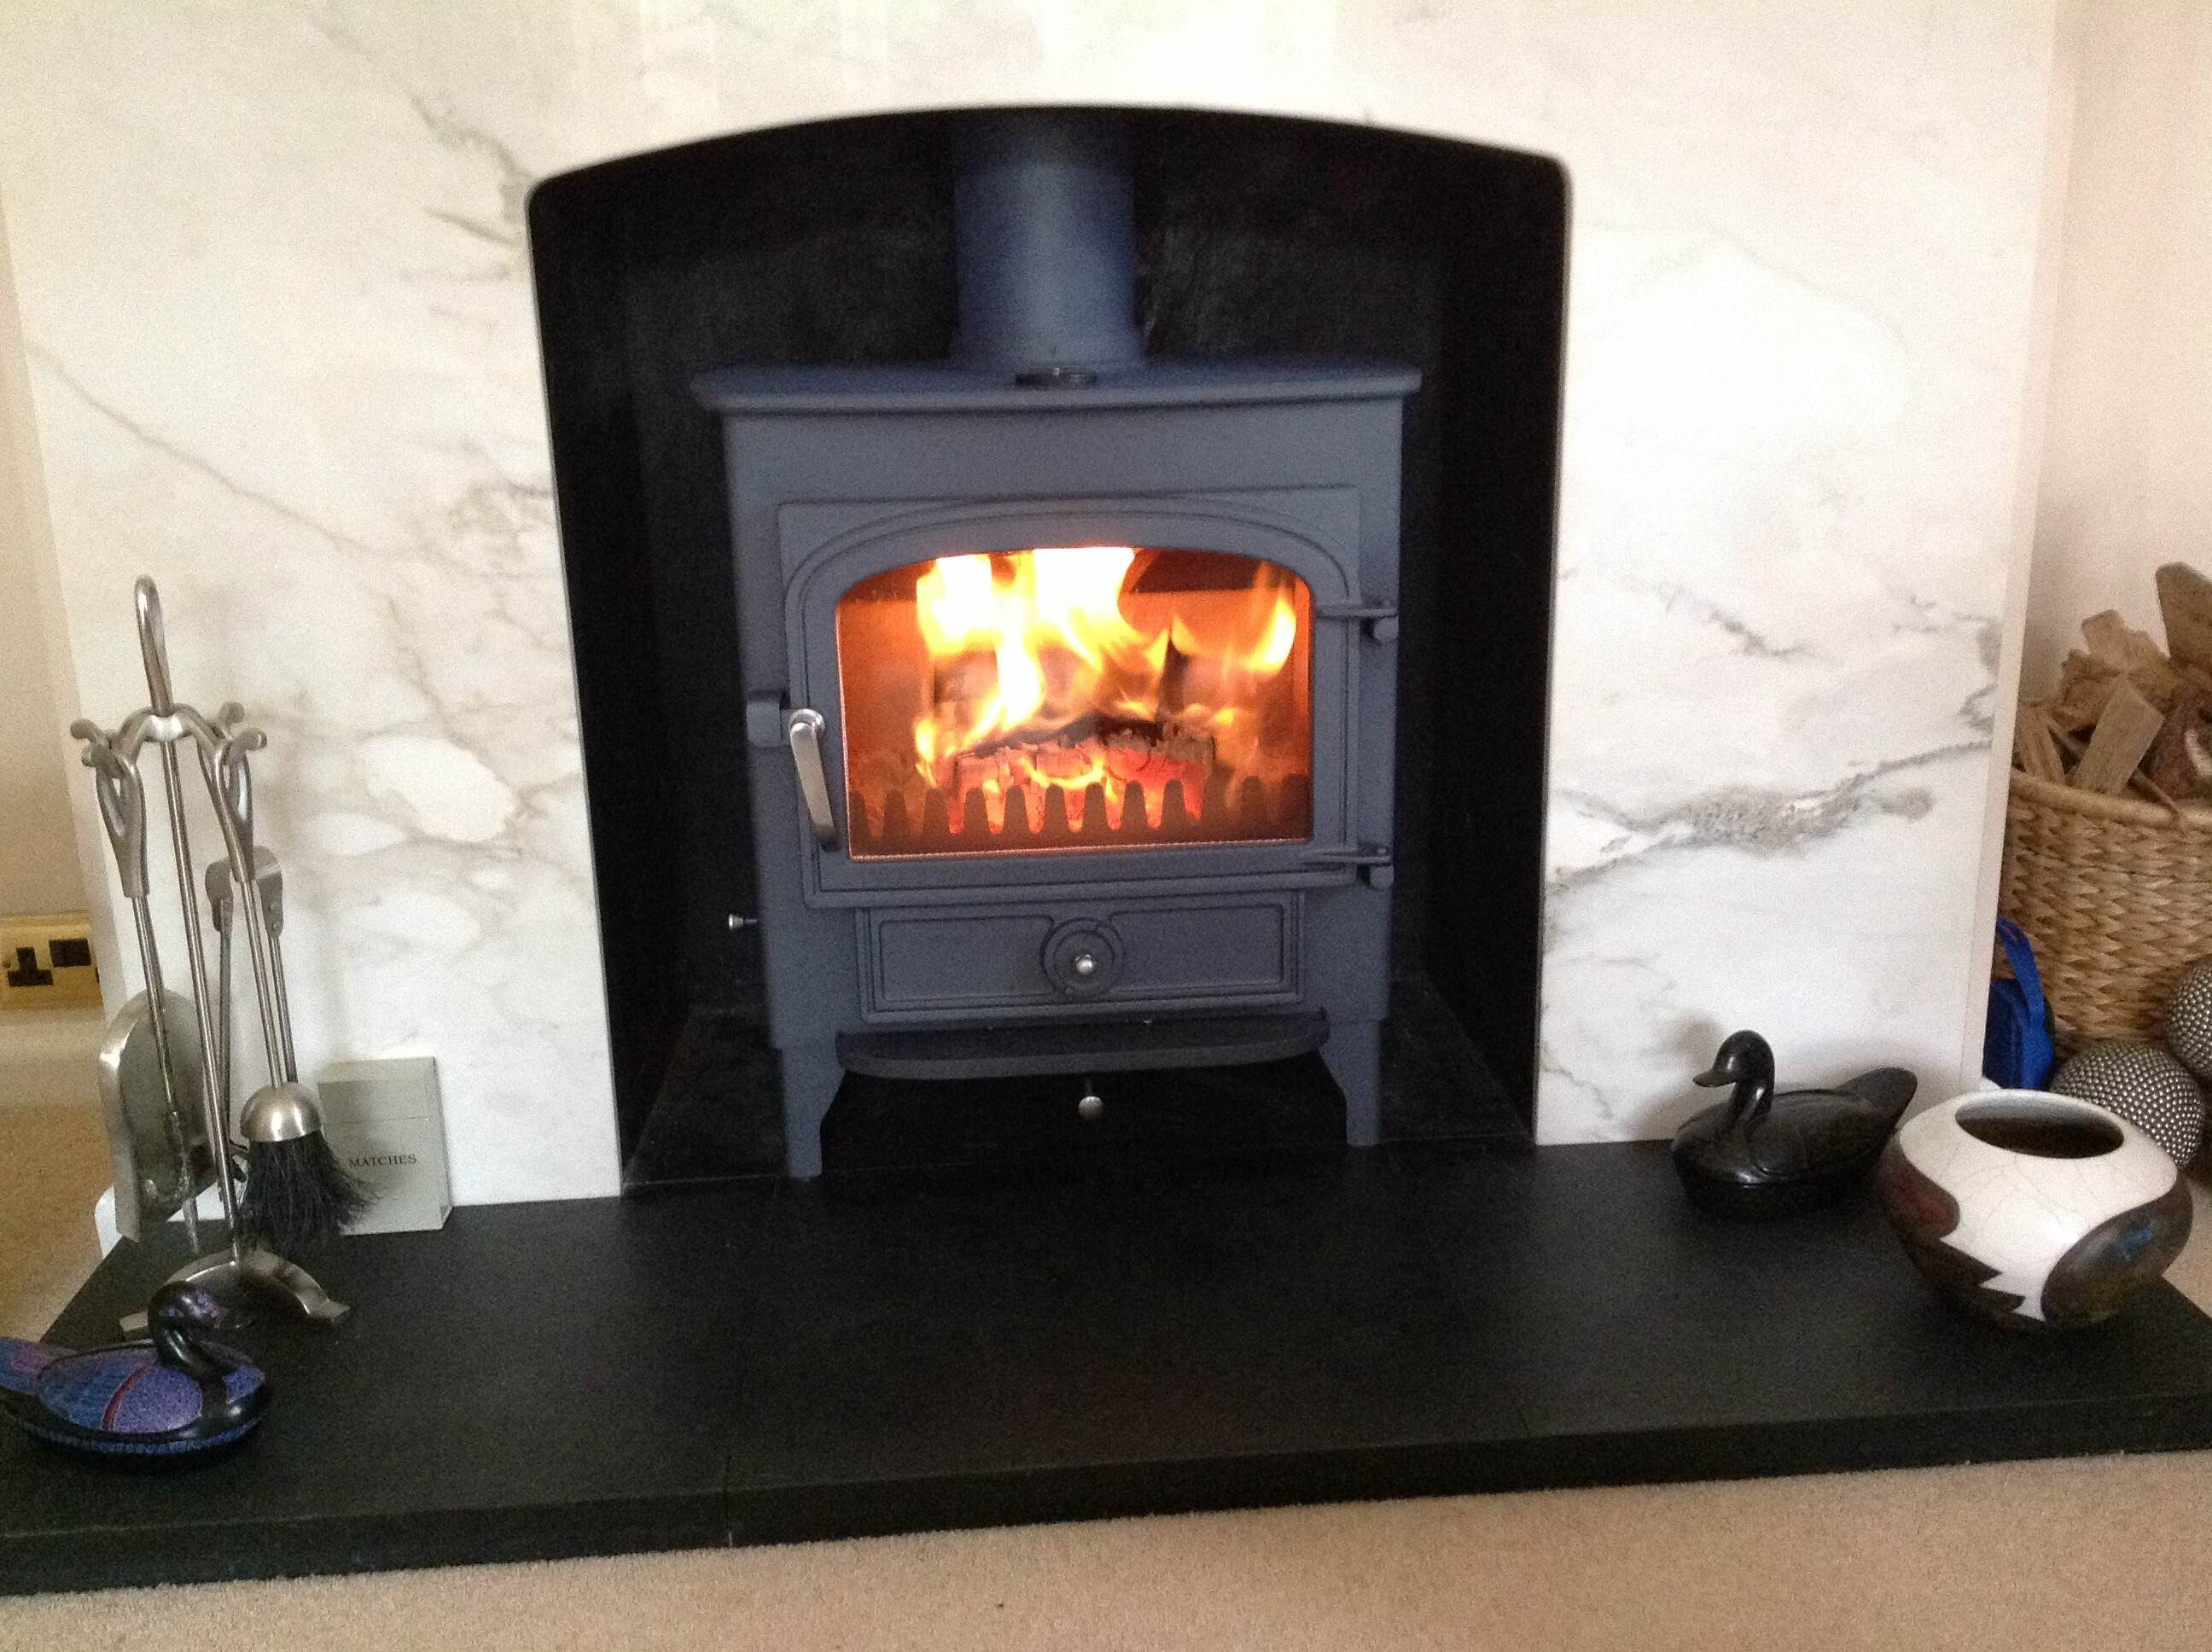 clearview vision 500 in welsh slate blue set in a marble